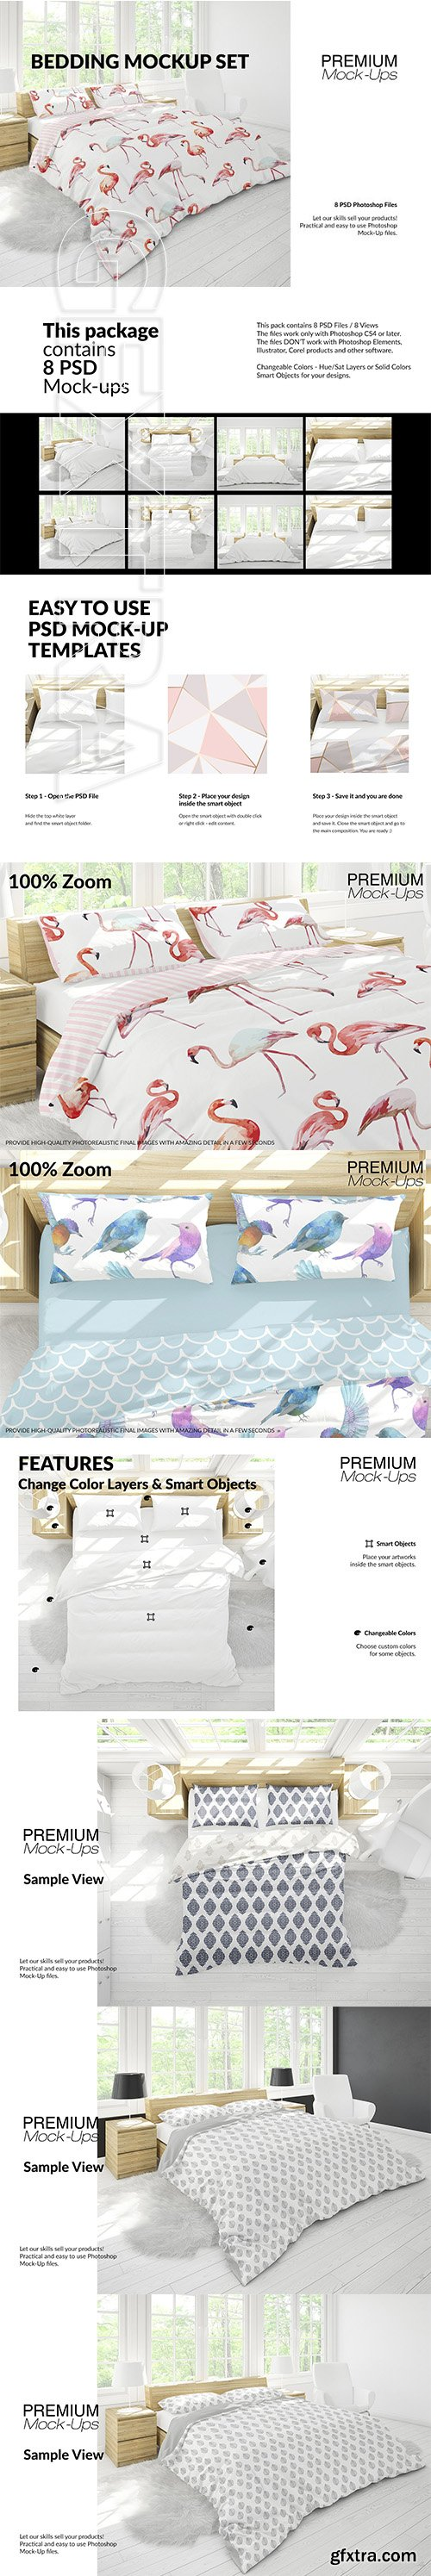 CreativeMarket - Bedding Mockup Set 2930610